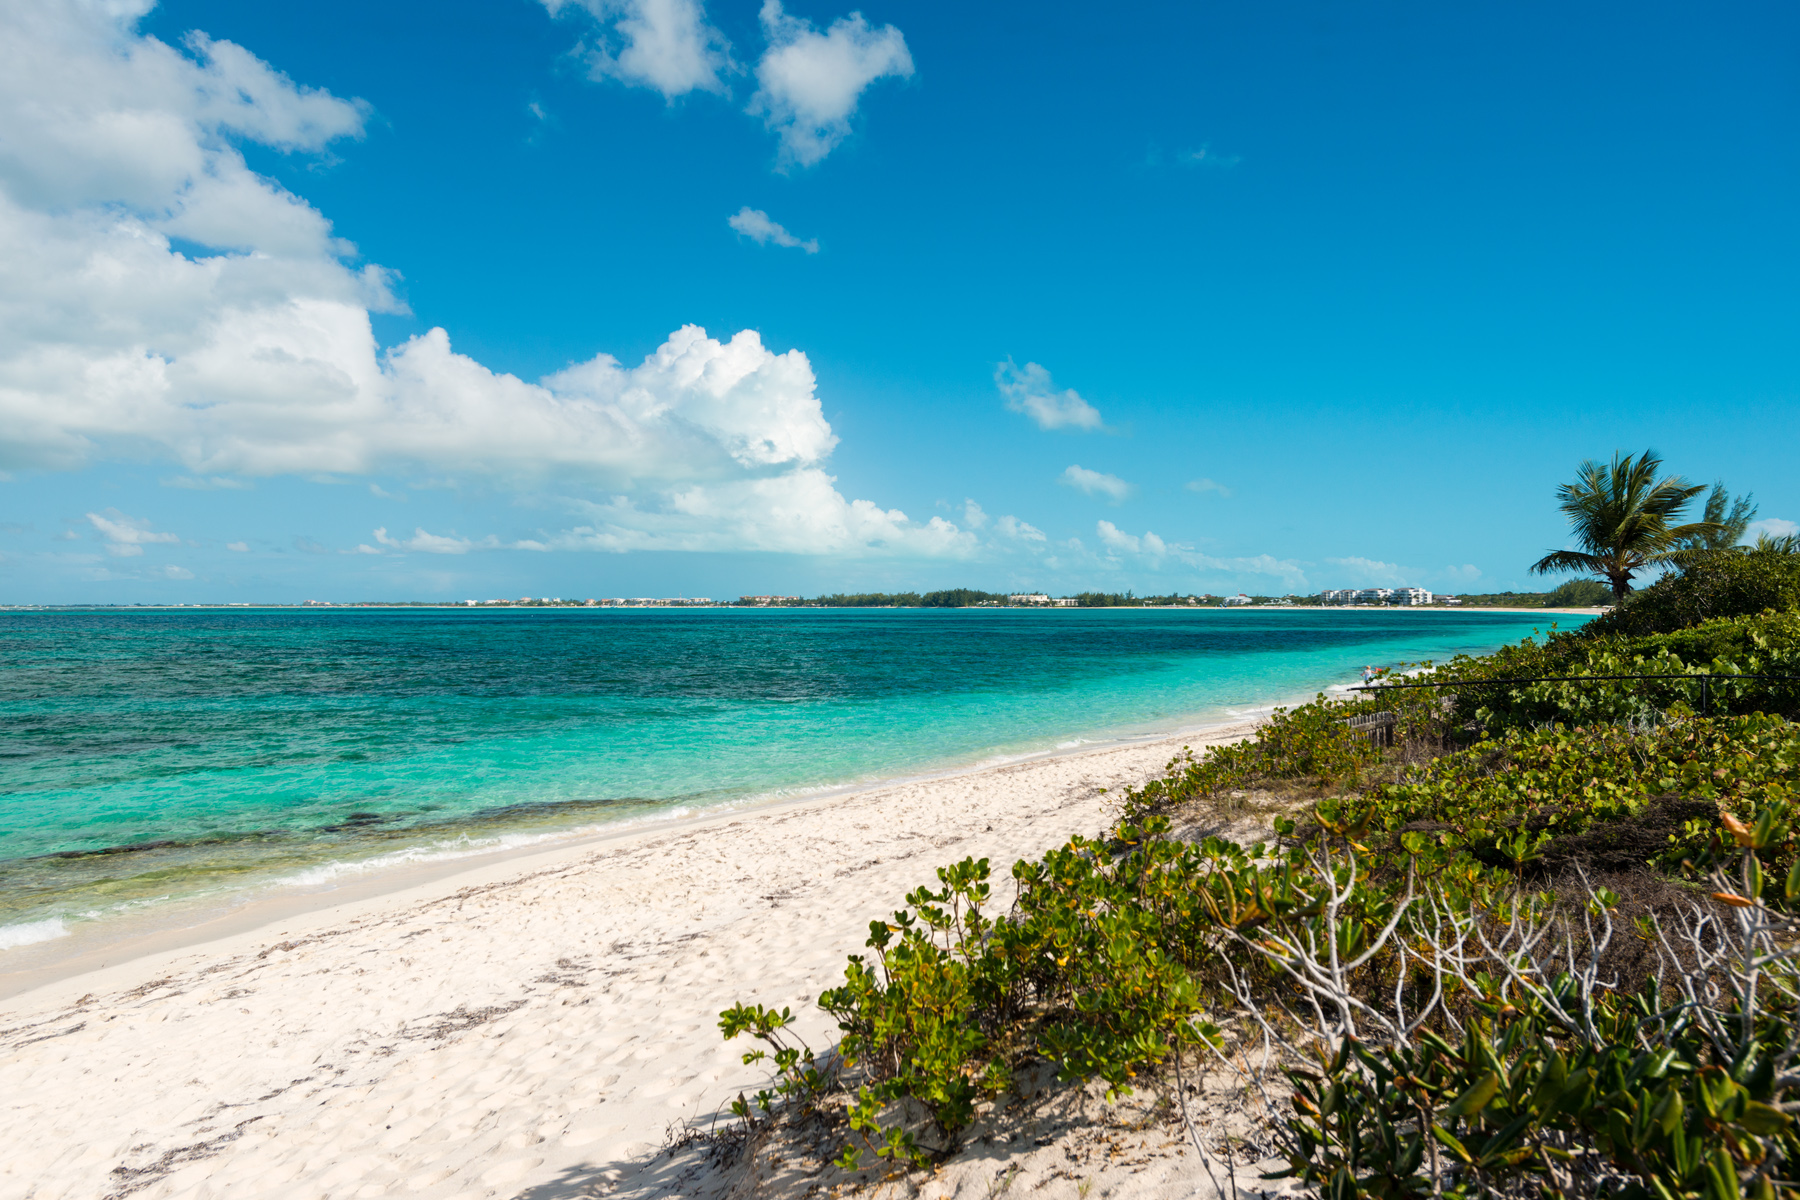 Land for Sale at Turtle Cove Beachfront Lot Turtle Cove, Turks And Caicos Islands